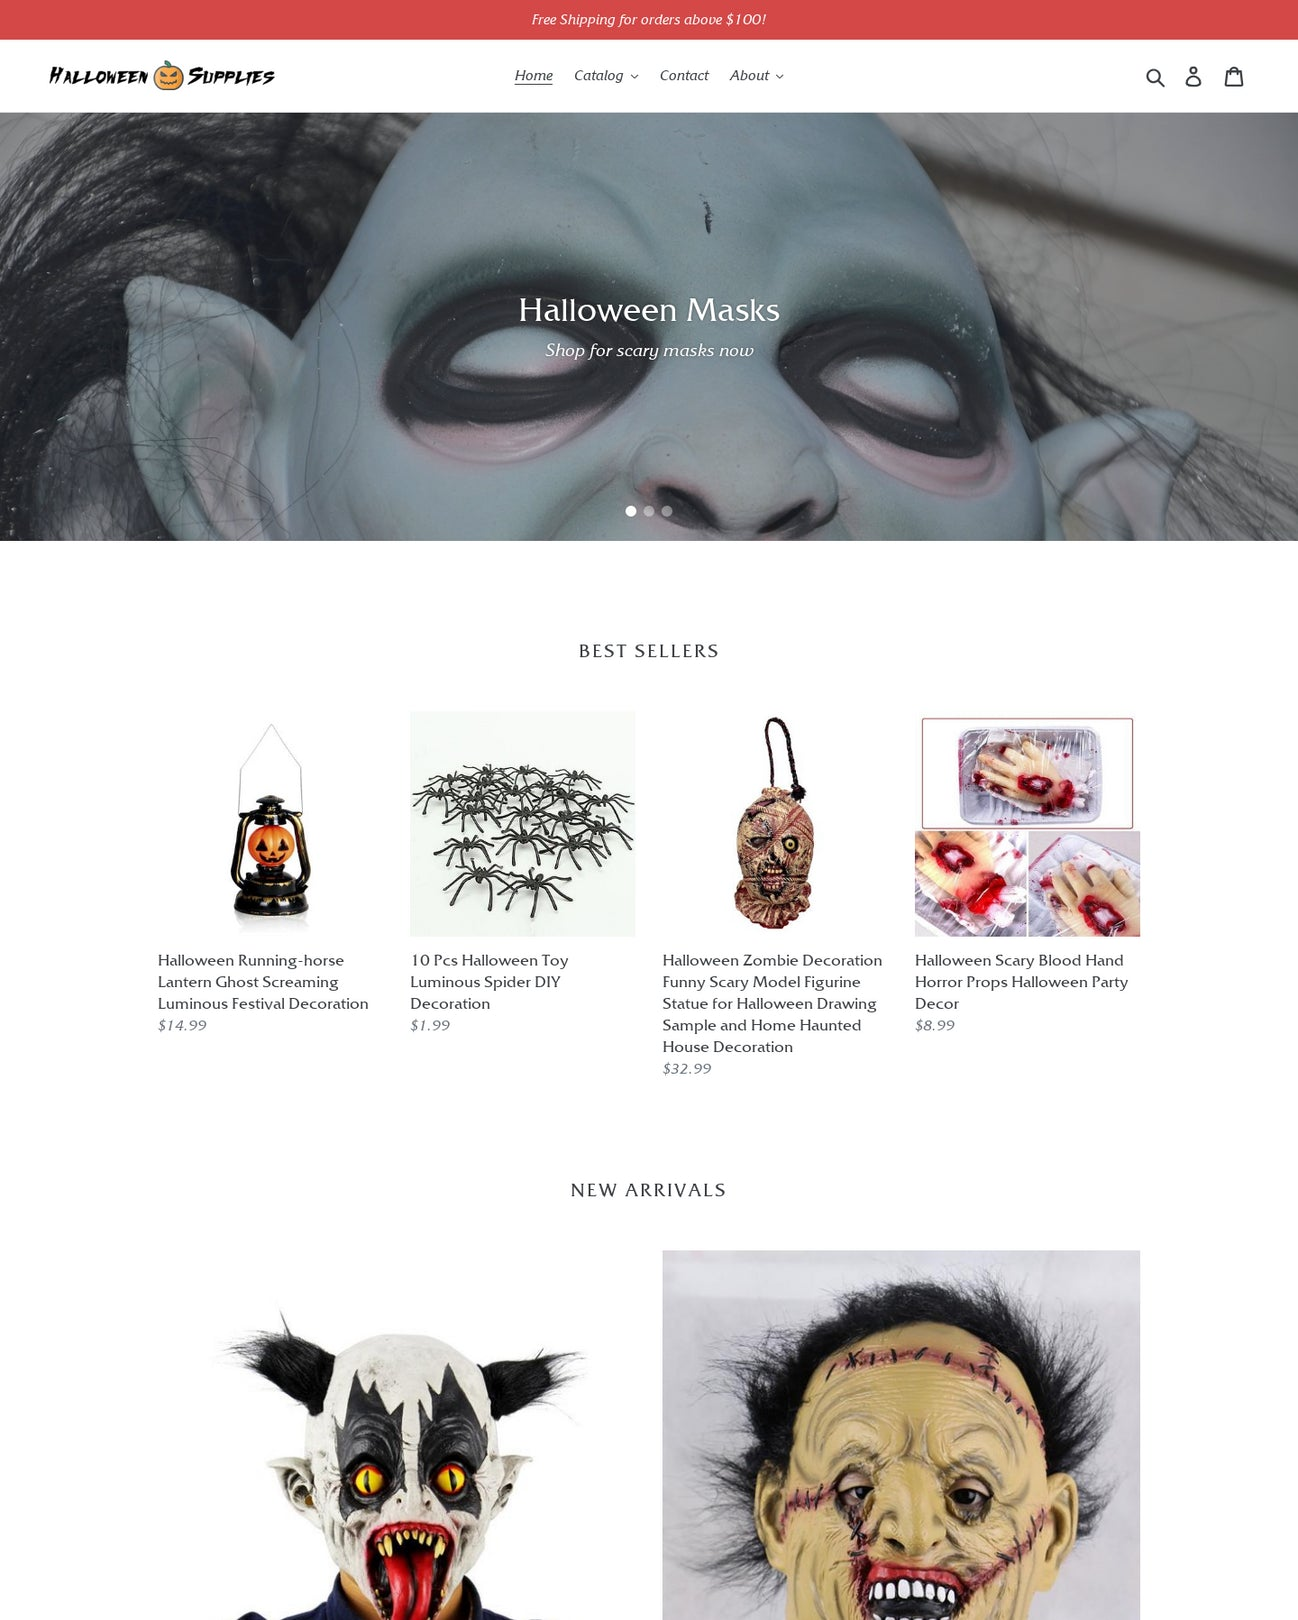 Halloween Store Online | Halloween Store Shop For Sale Buy An Online Business